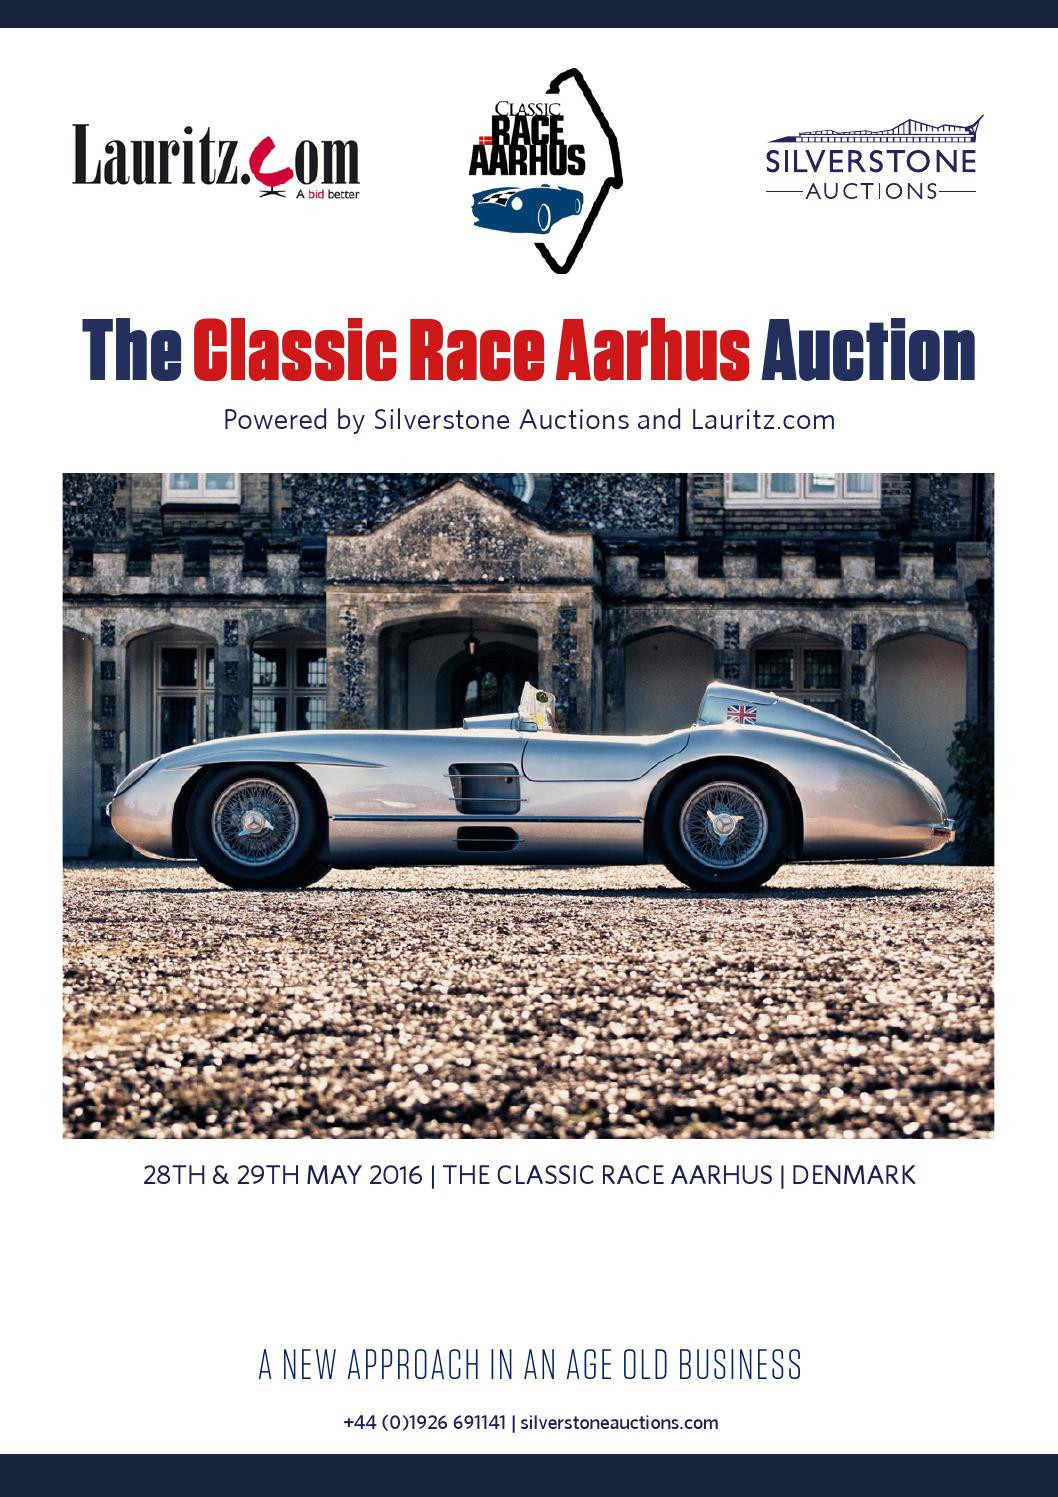 The Classic Race Aarhus Auction 2016 By Silverstone Auctions Issuu Cigarette Lighter Circuit Diagram For 1960 Chevrolet Passenger Car